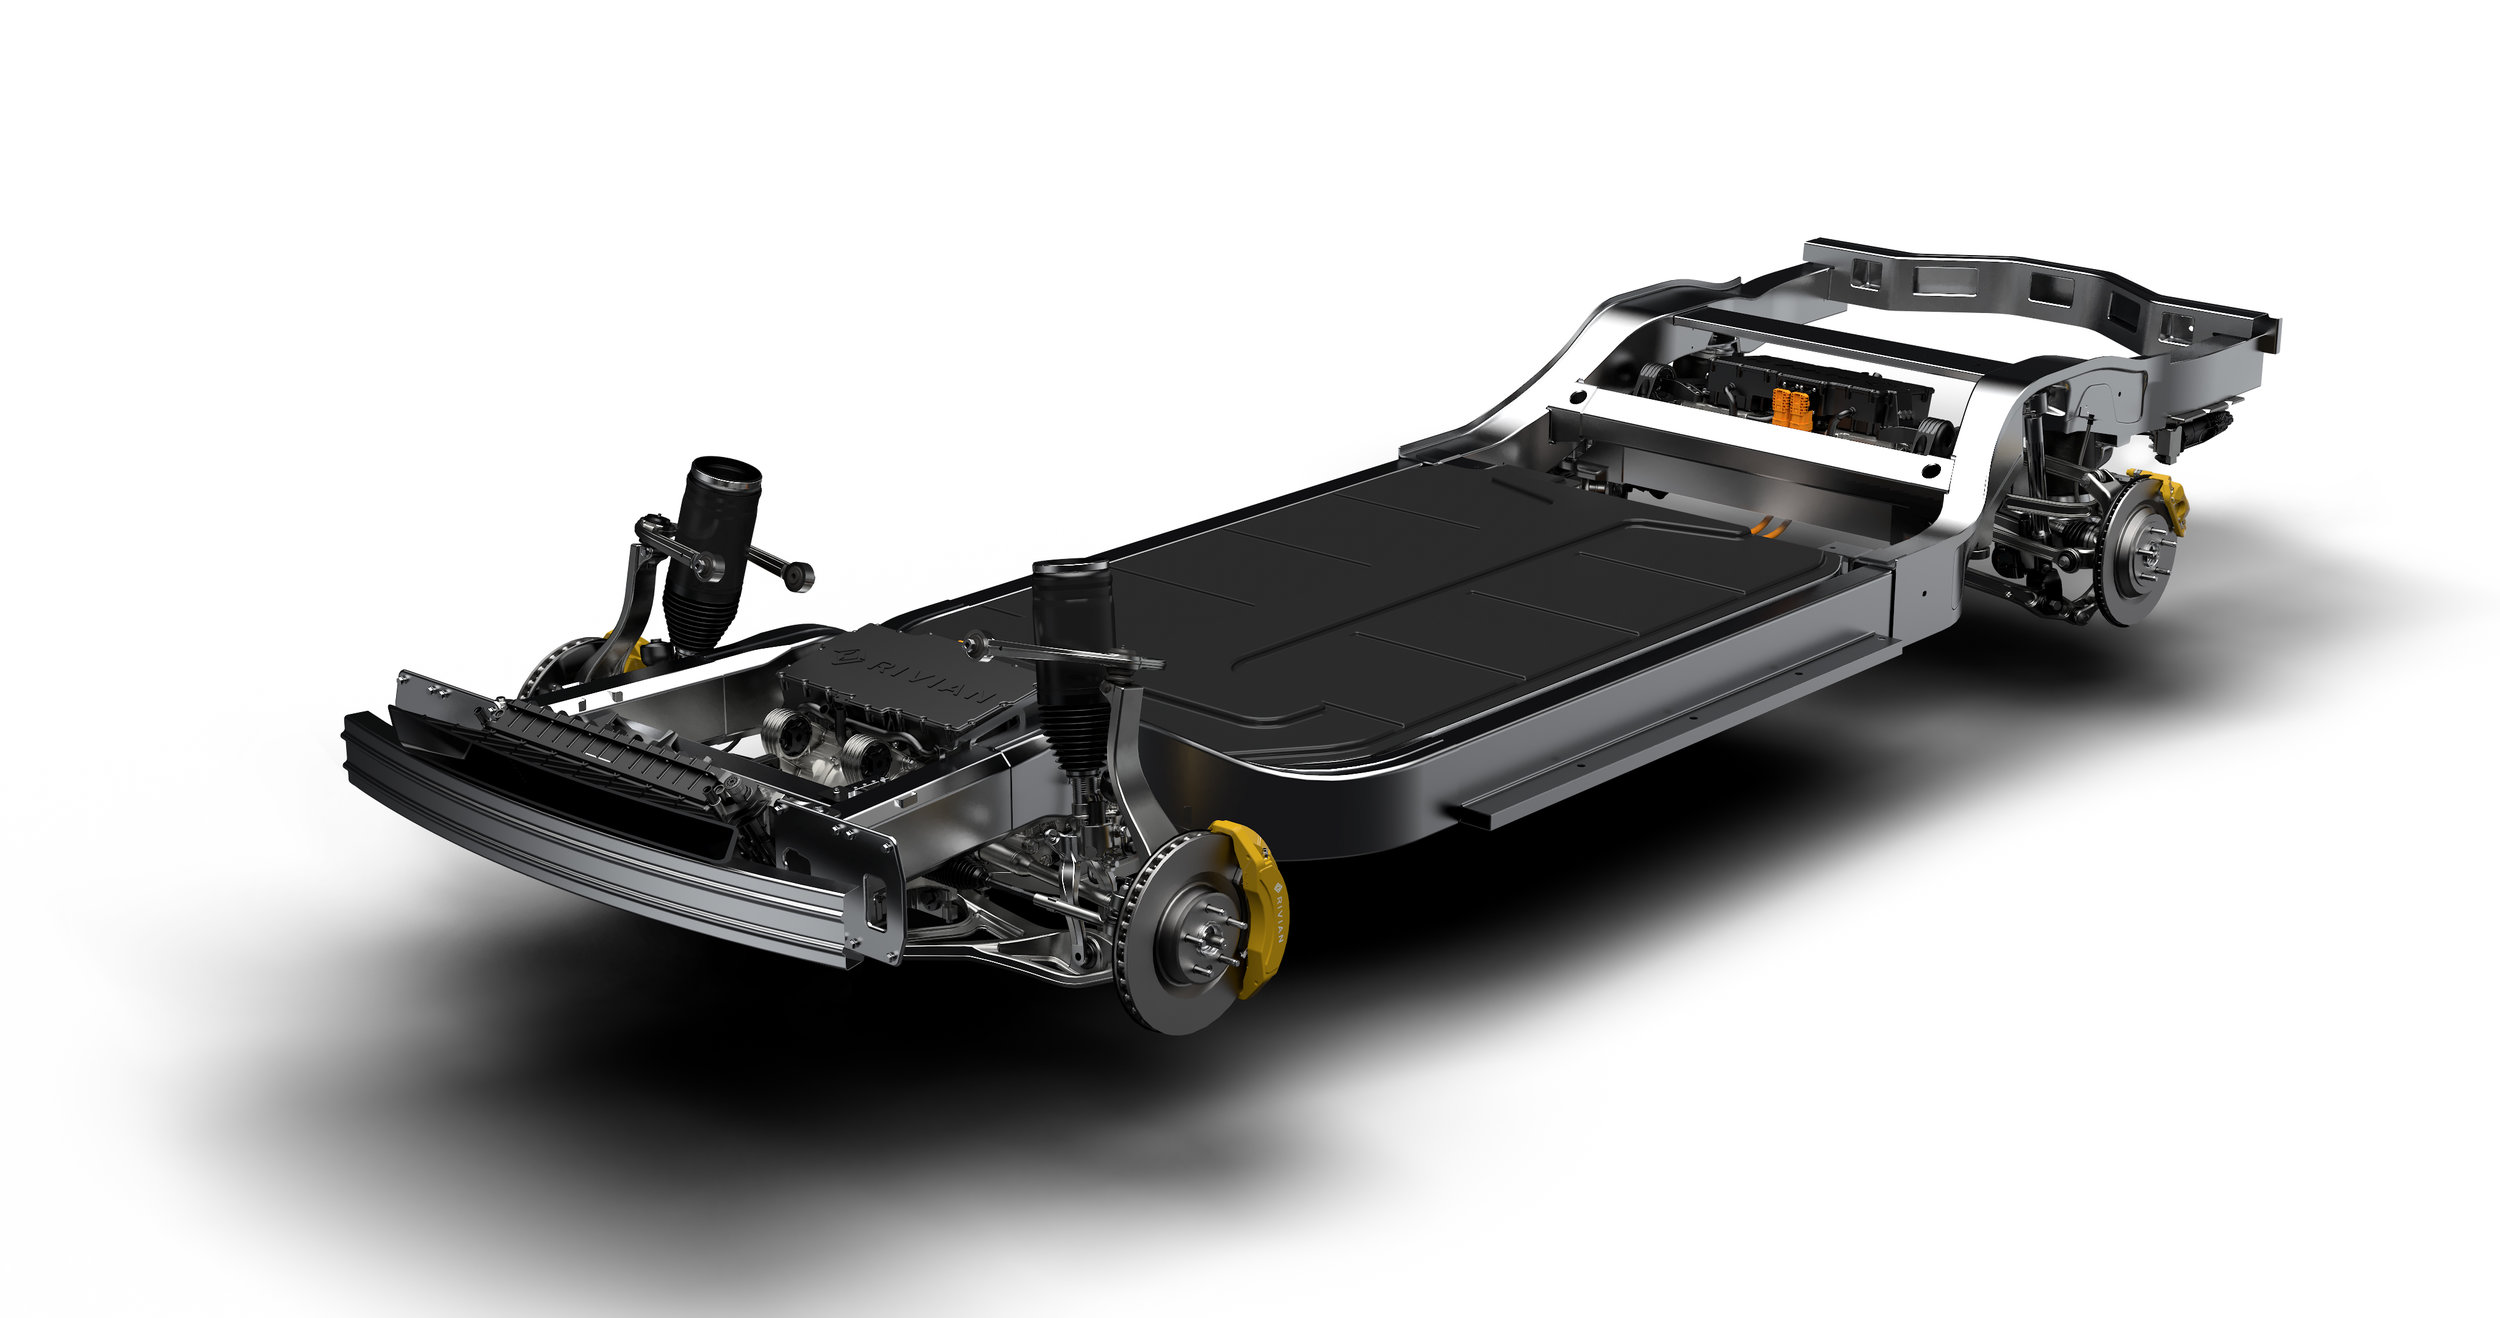 The Rivian 'skateboard' chassis and motor system